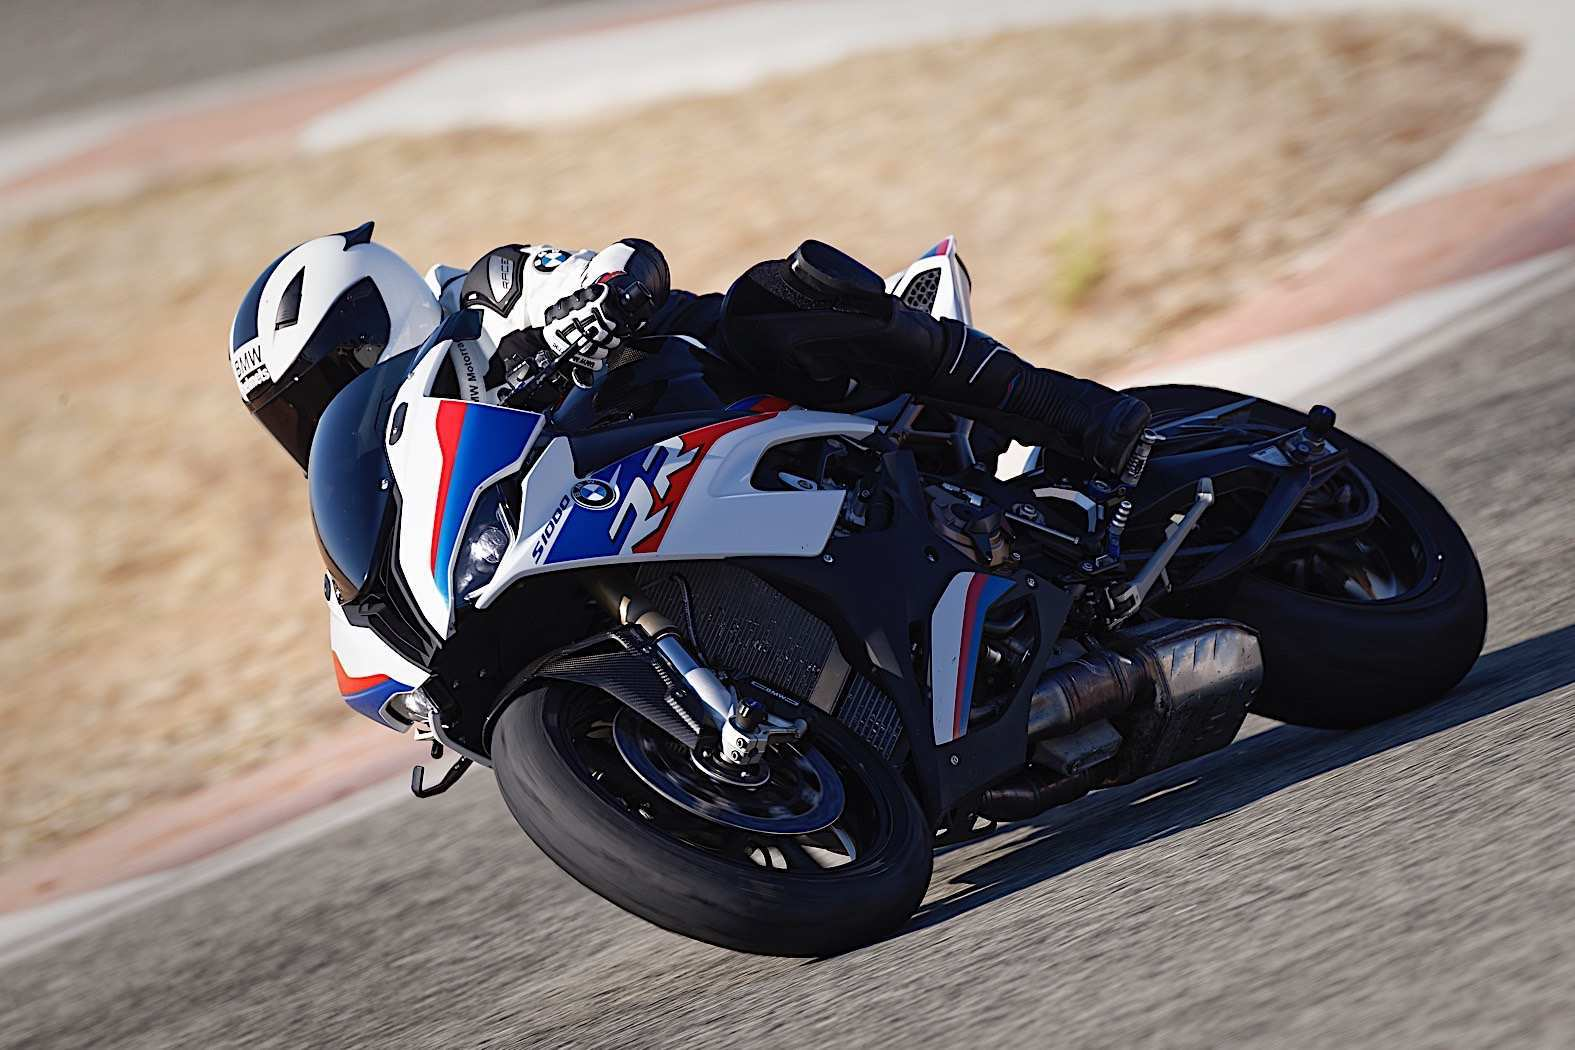 73 Great BMW S1000Rr 2020 Specs and Review by BMW S1000Rr 2020